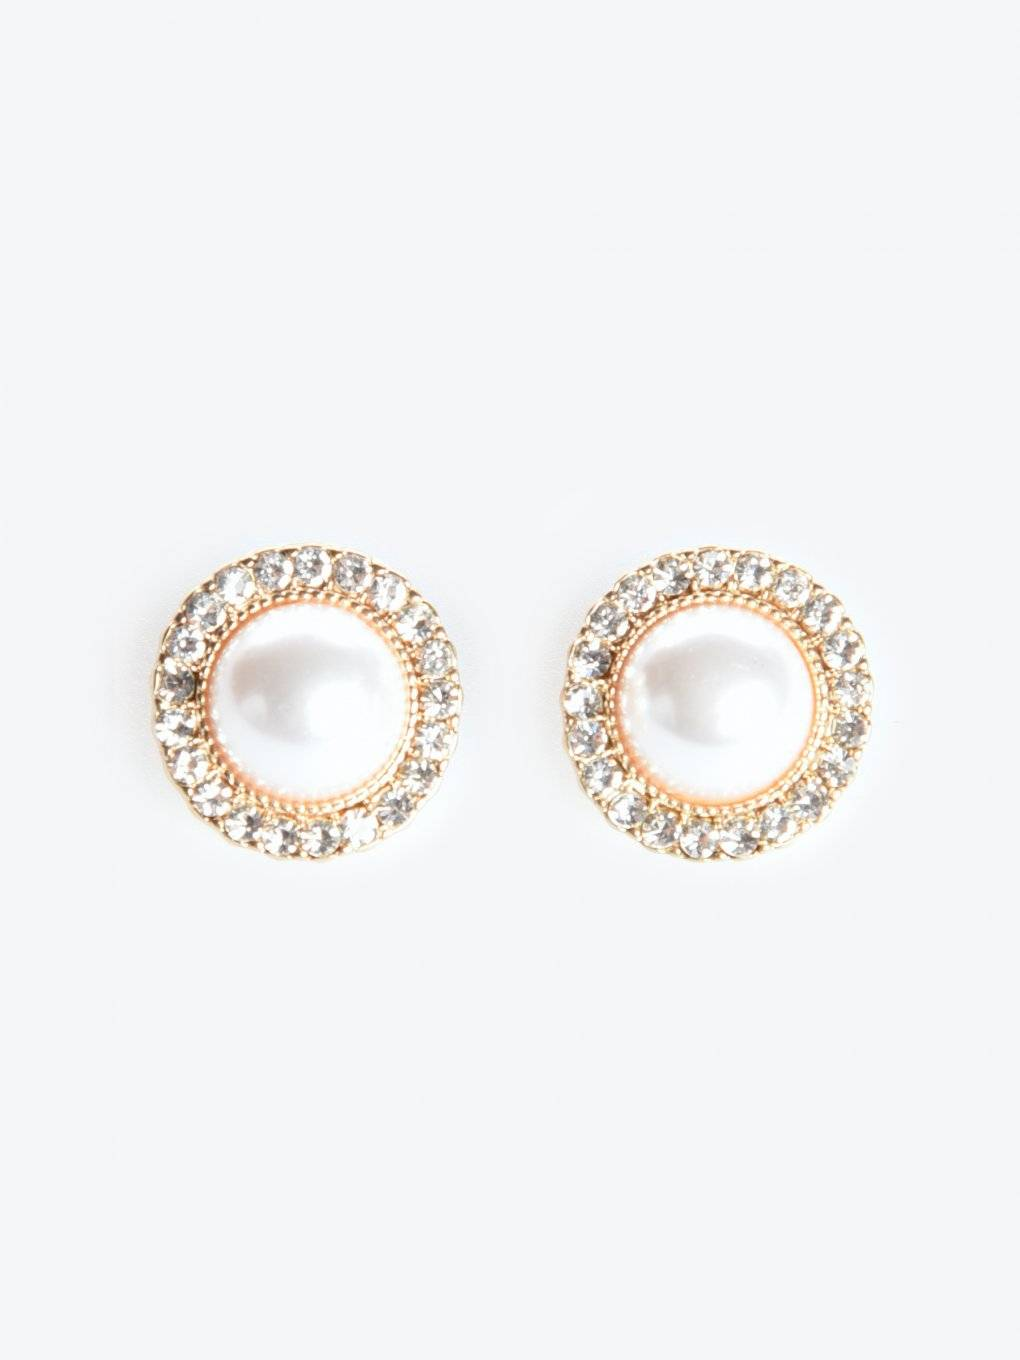 Earrings with pearl and stones